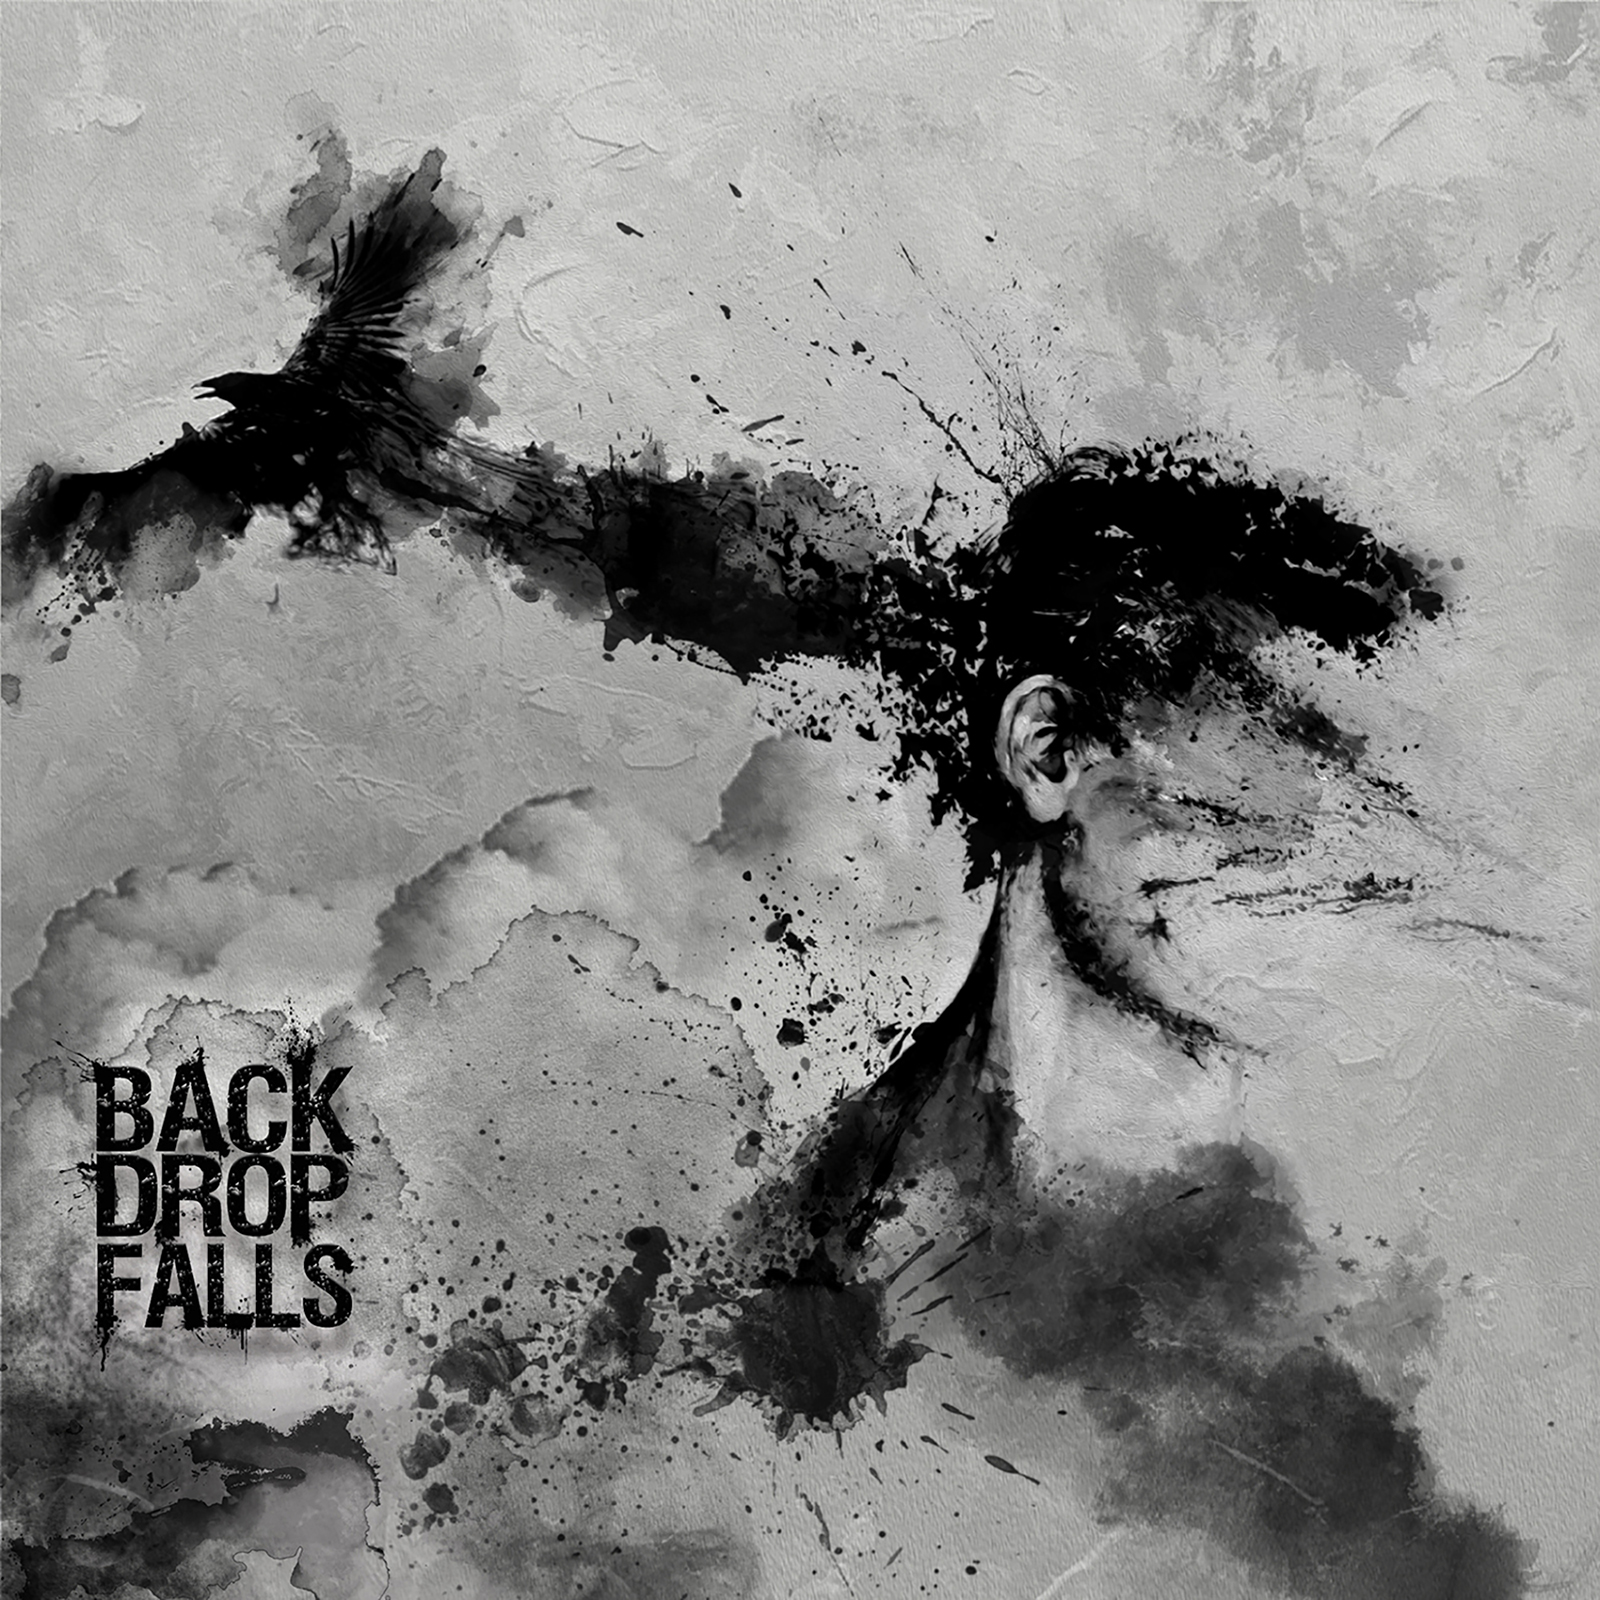 BACKDROP FALLS - There's No Such Place as Home